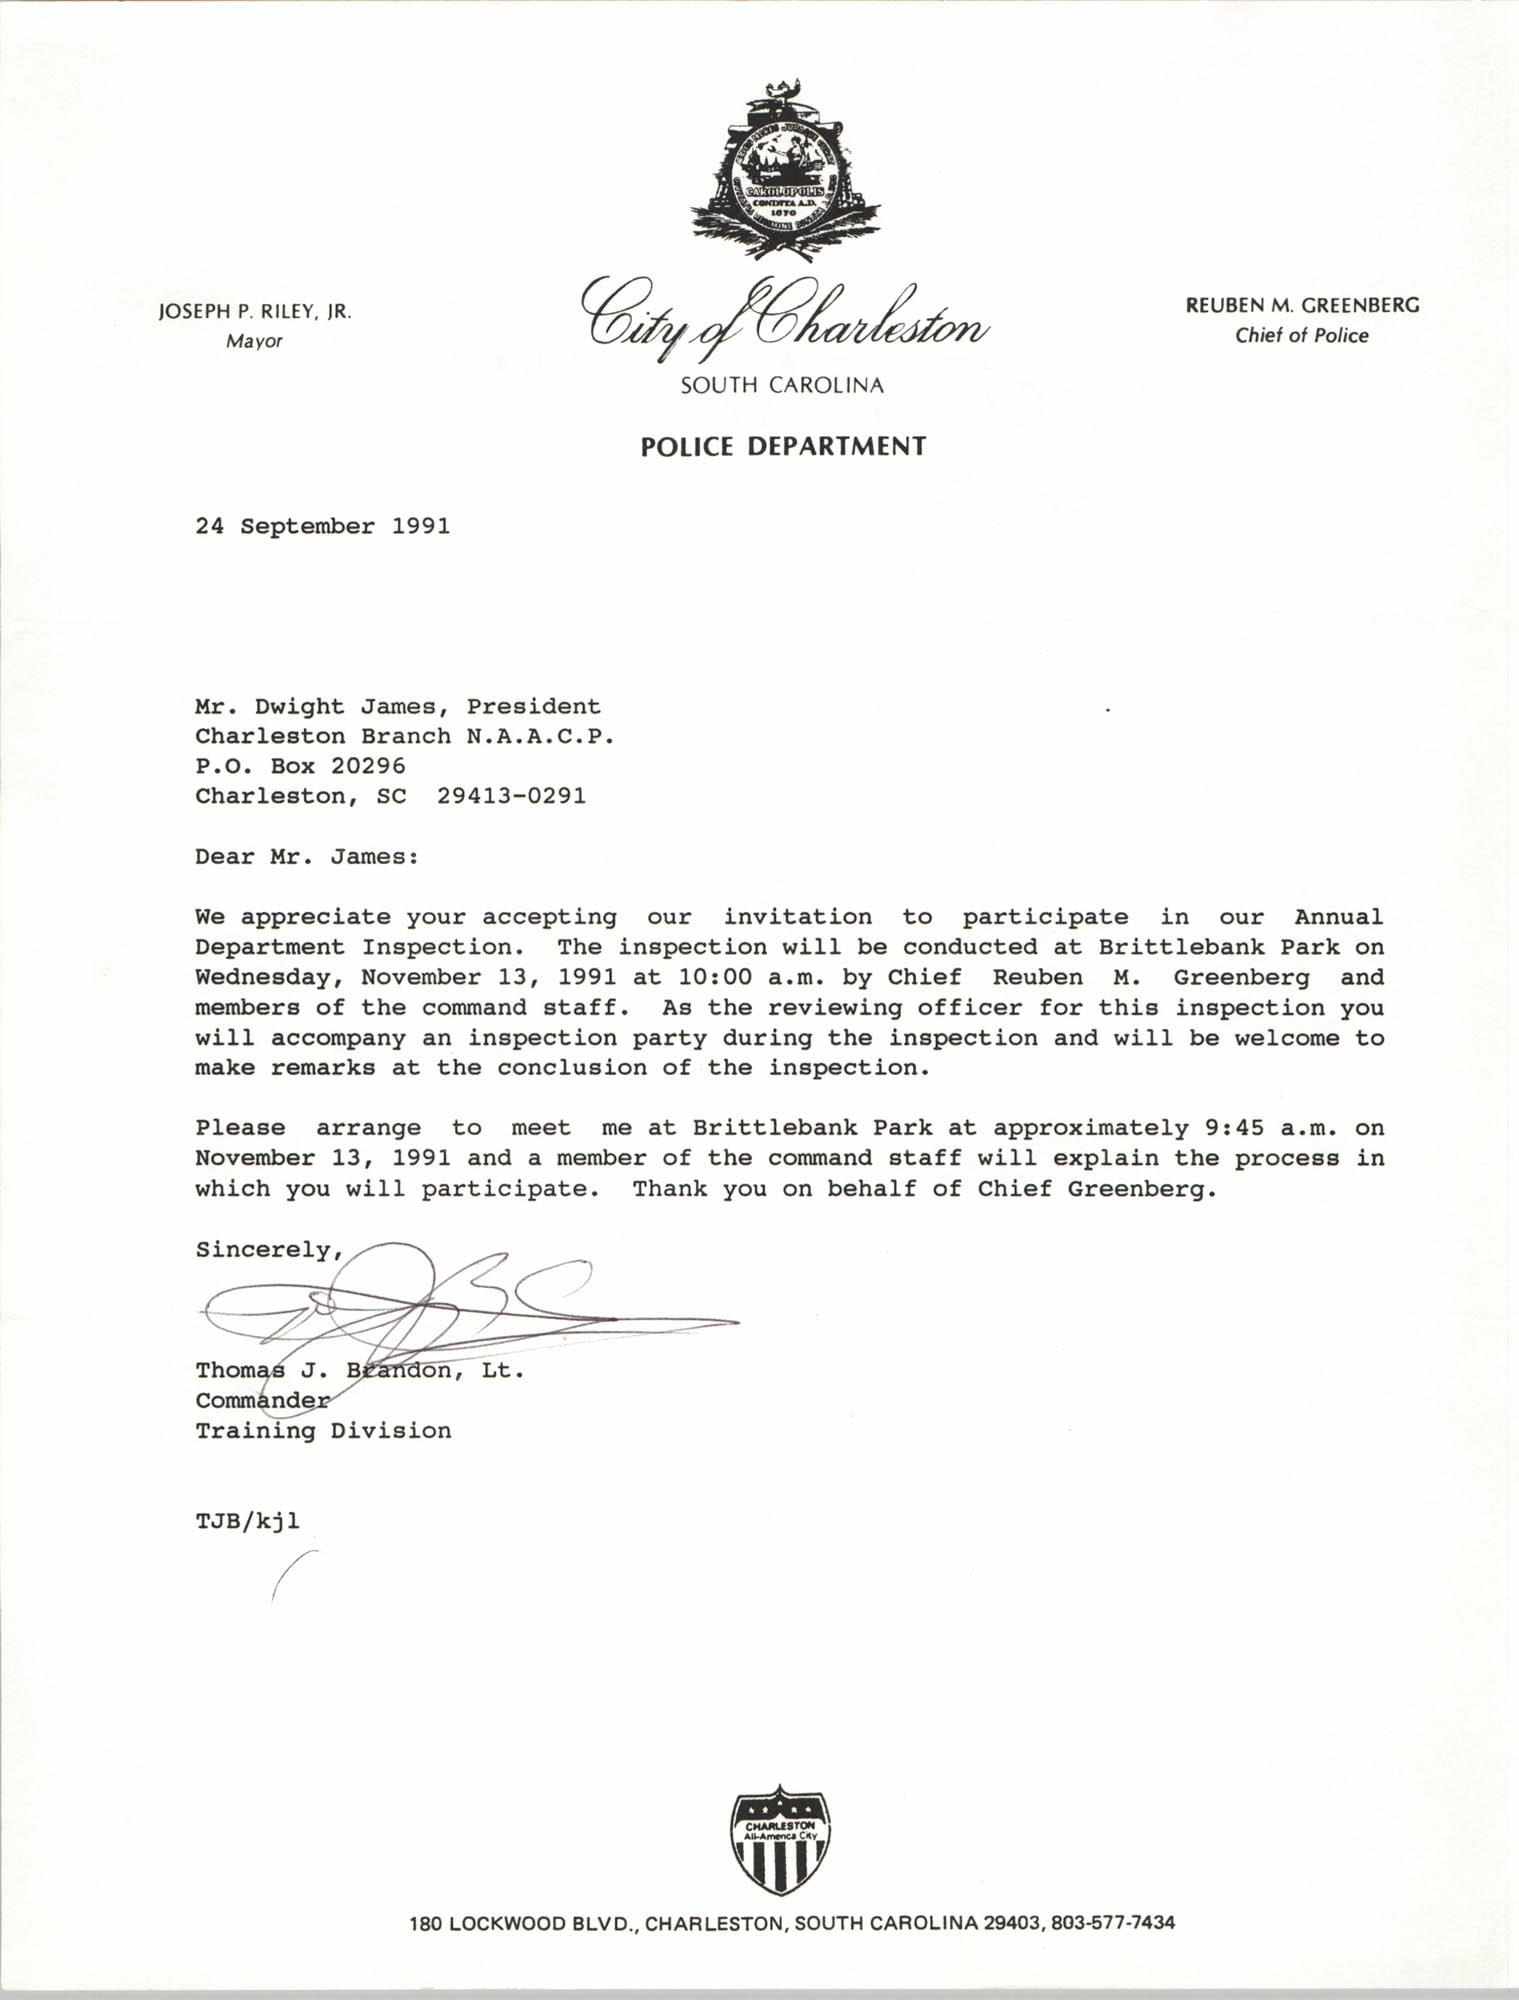 Letter from Thomas J. Brandon to Dwight James, September 24, 1991